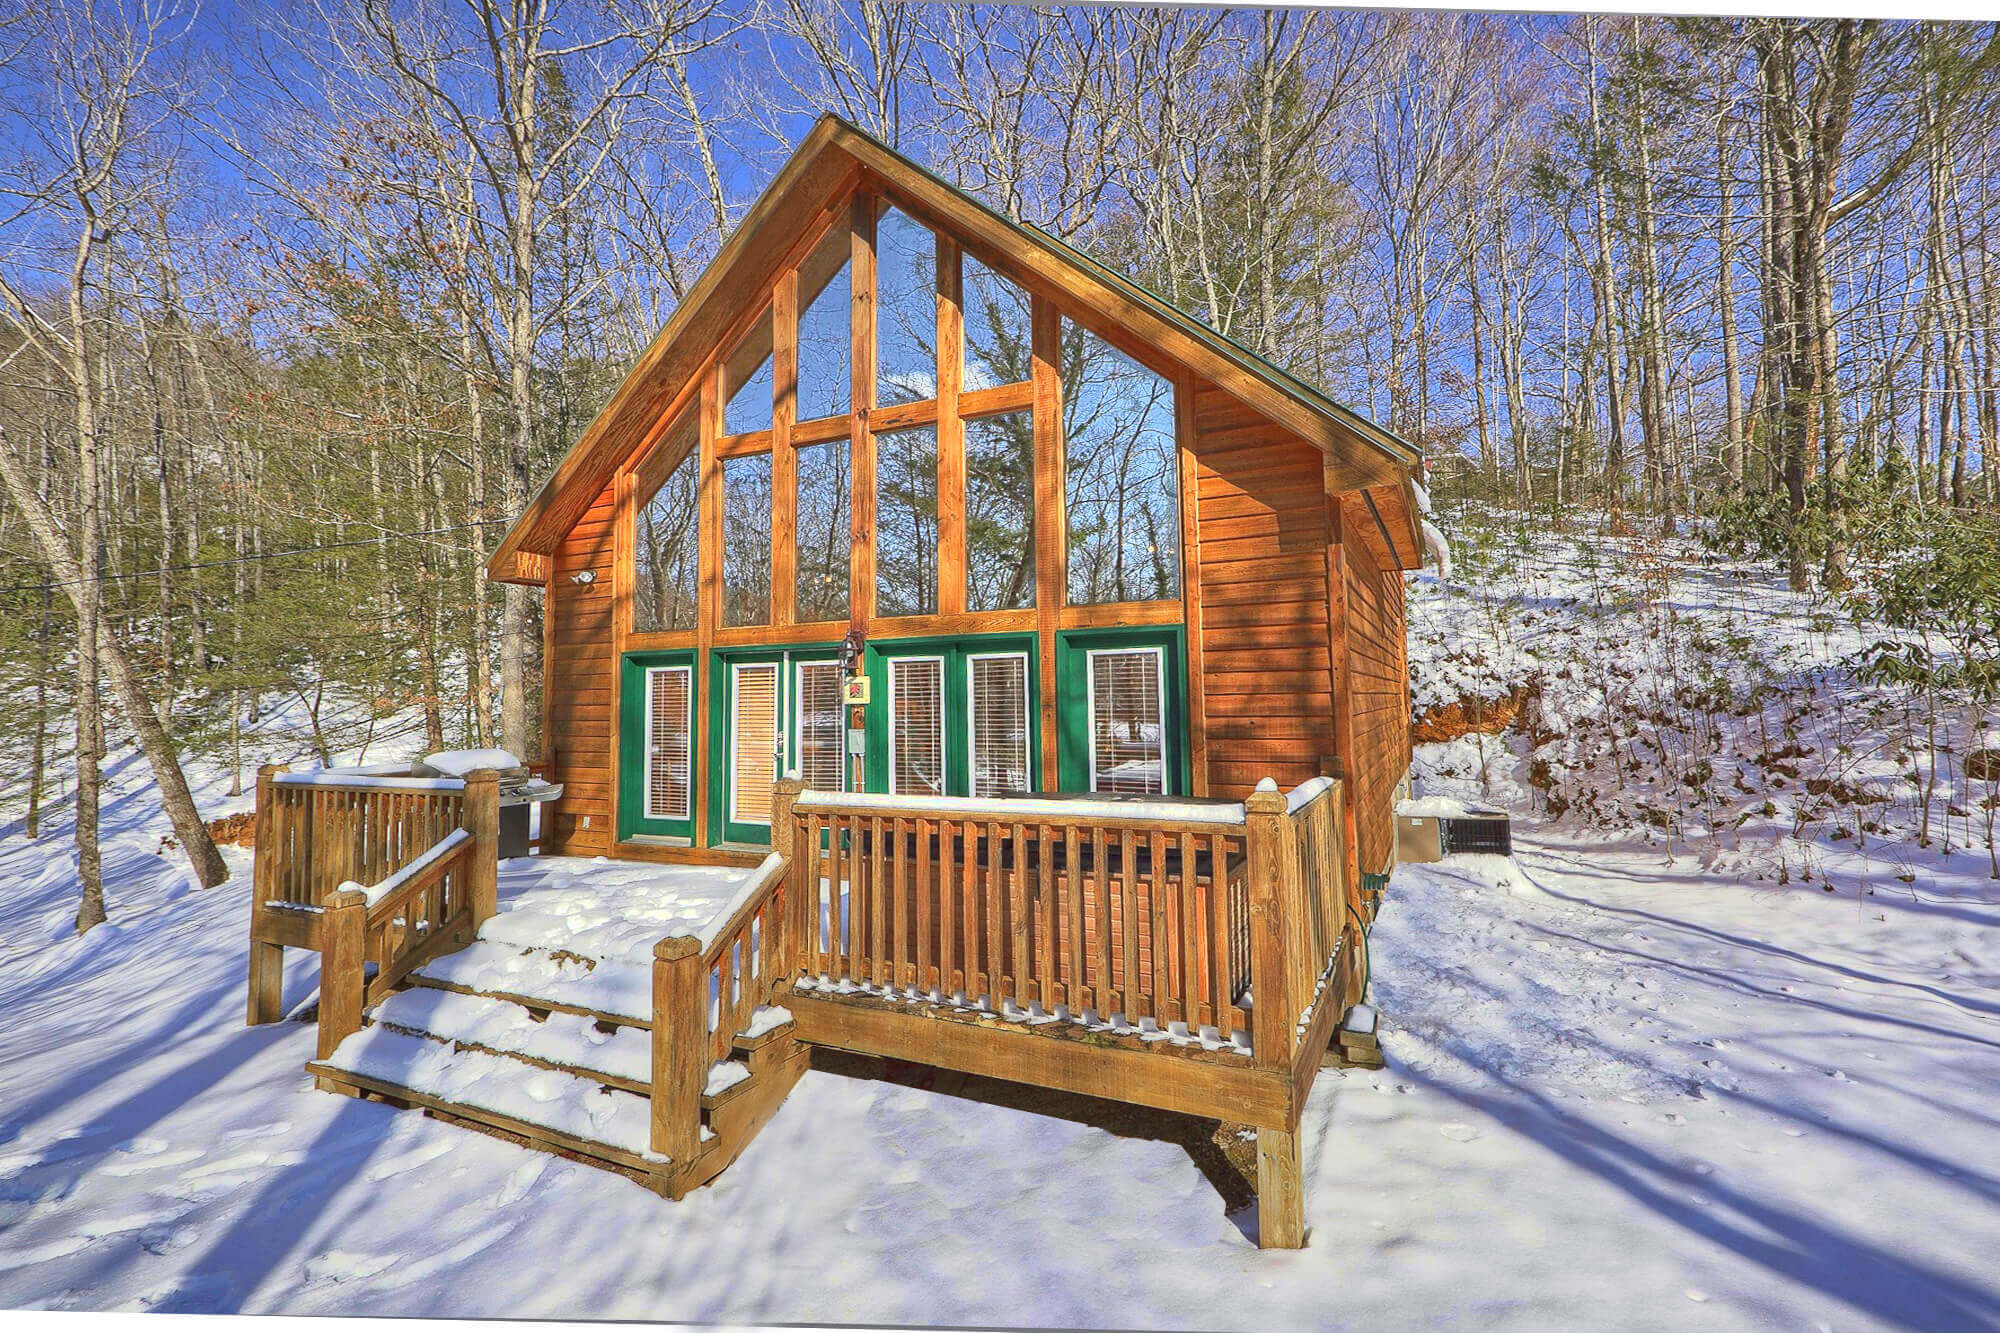 Smoky mountain romance 1 bedroom secluded private cabin Smoky mountain nc cabin rentals